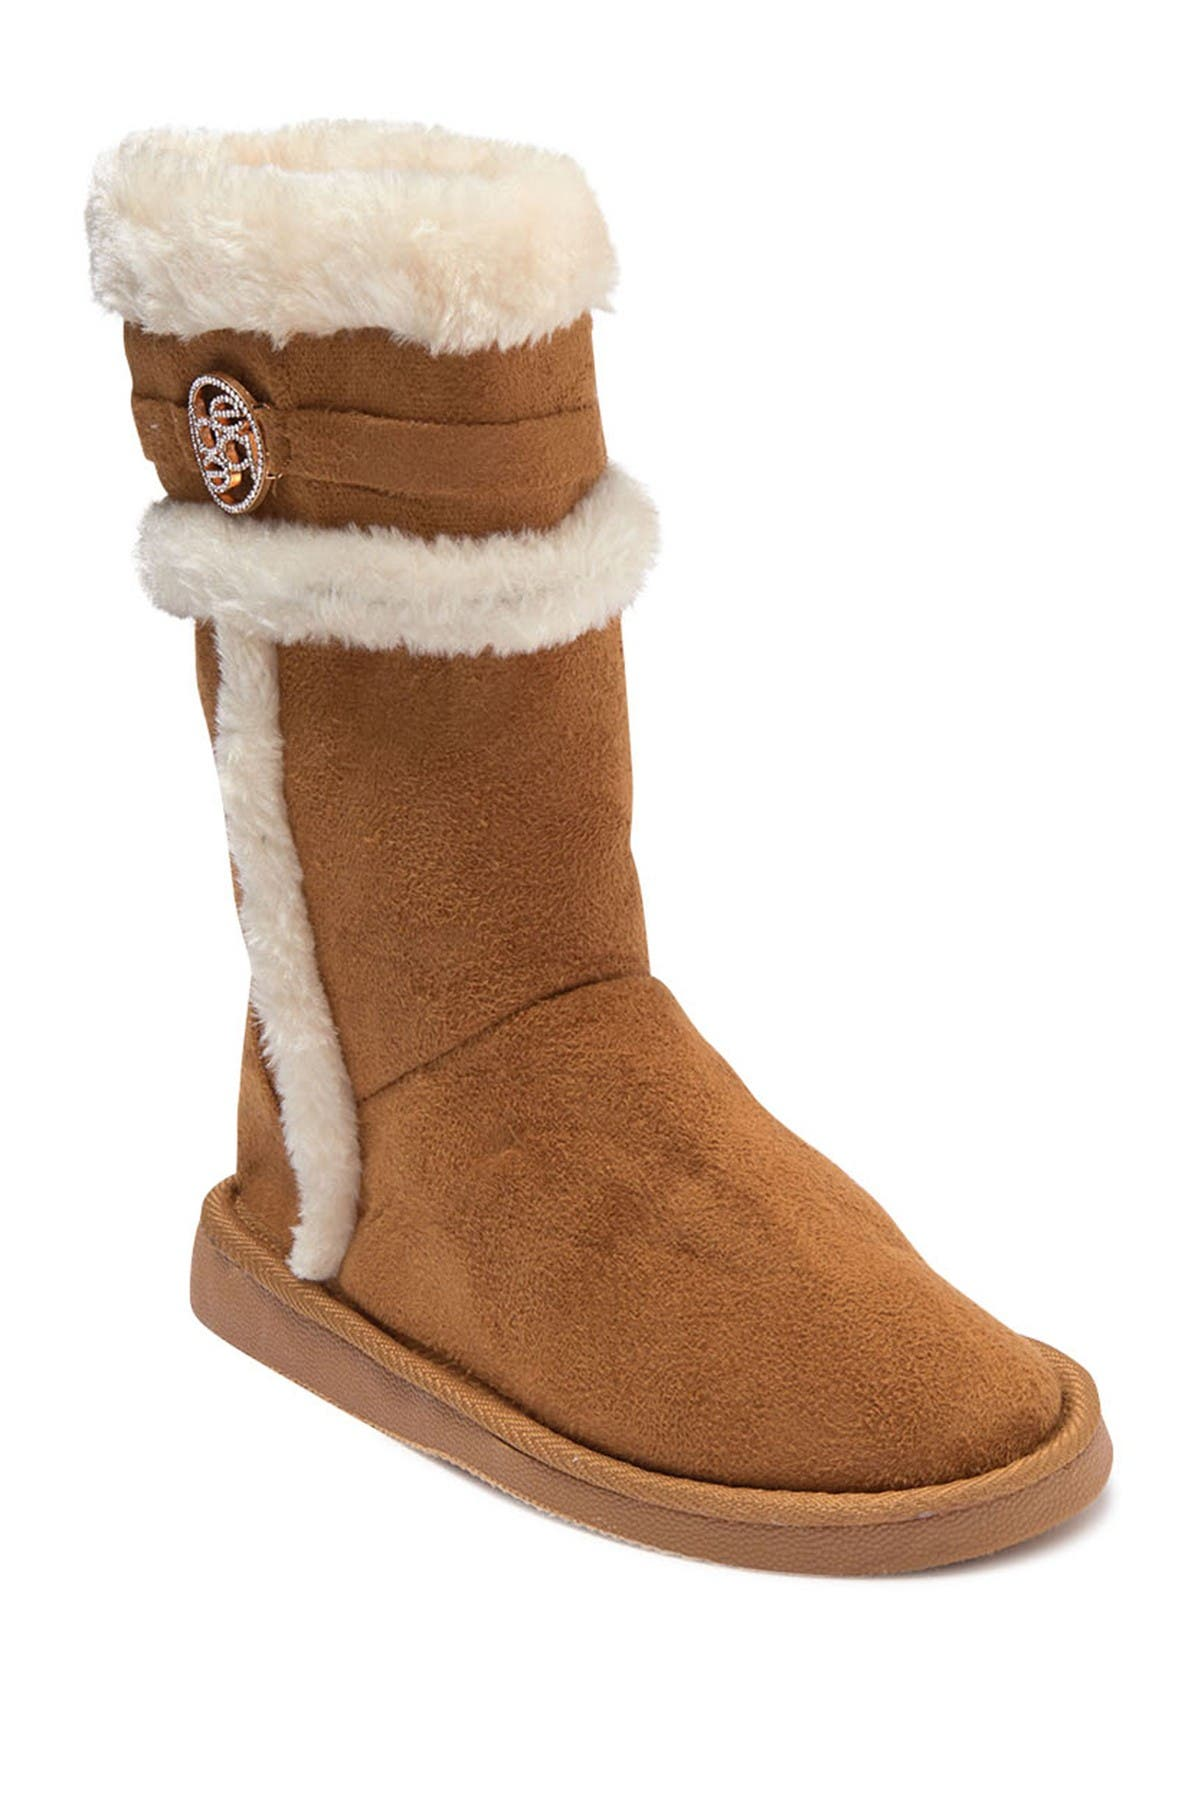 Image of bebe Tall Faux Fur Embellished Boot